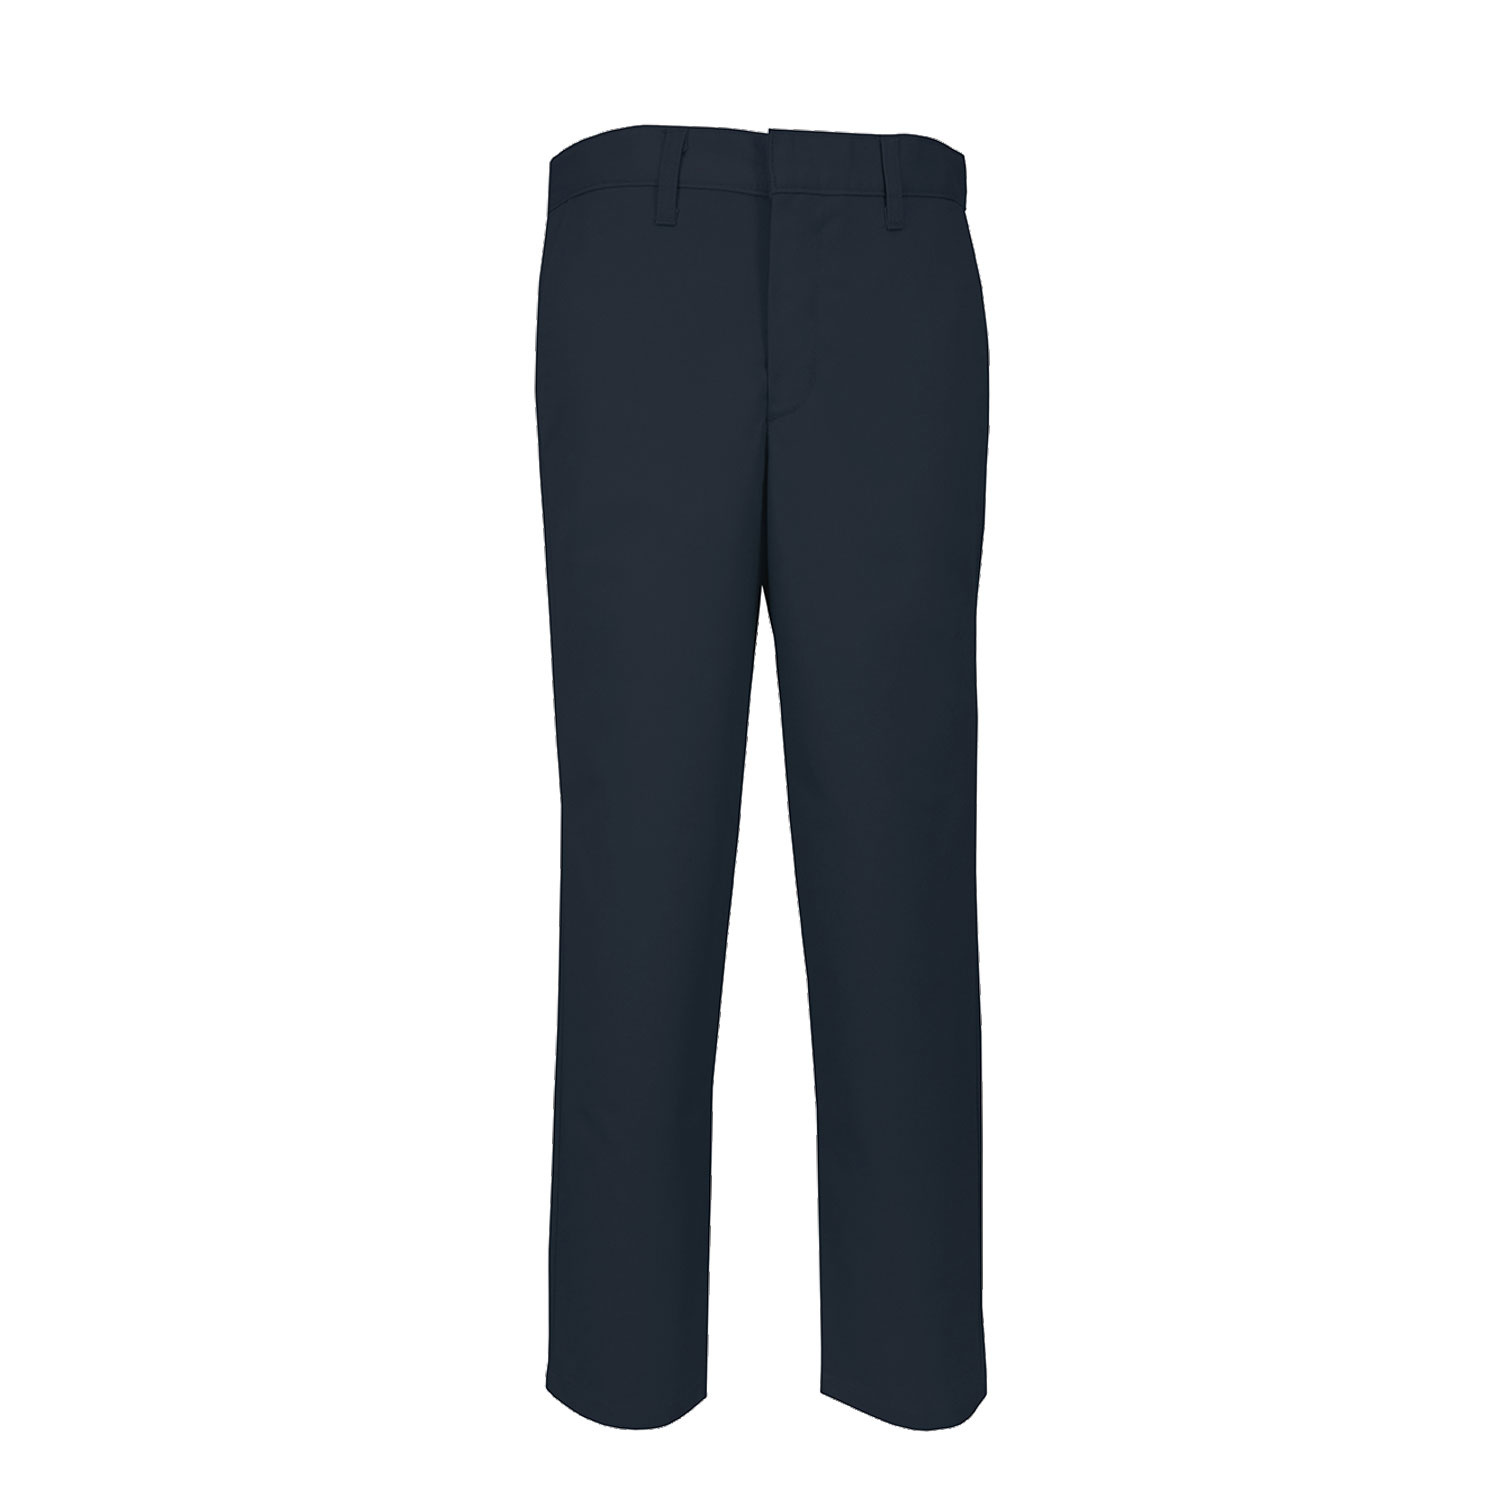 MVP Flex Twill Modern Fit Flat Front Pants (7893) Navy